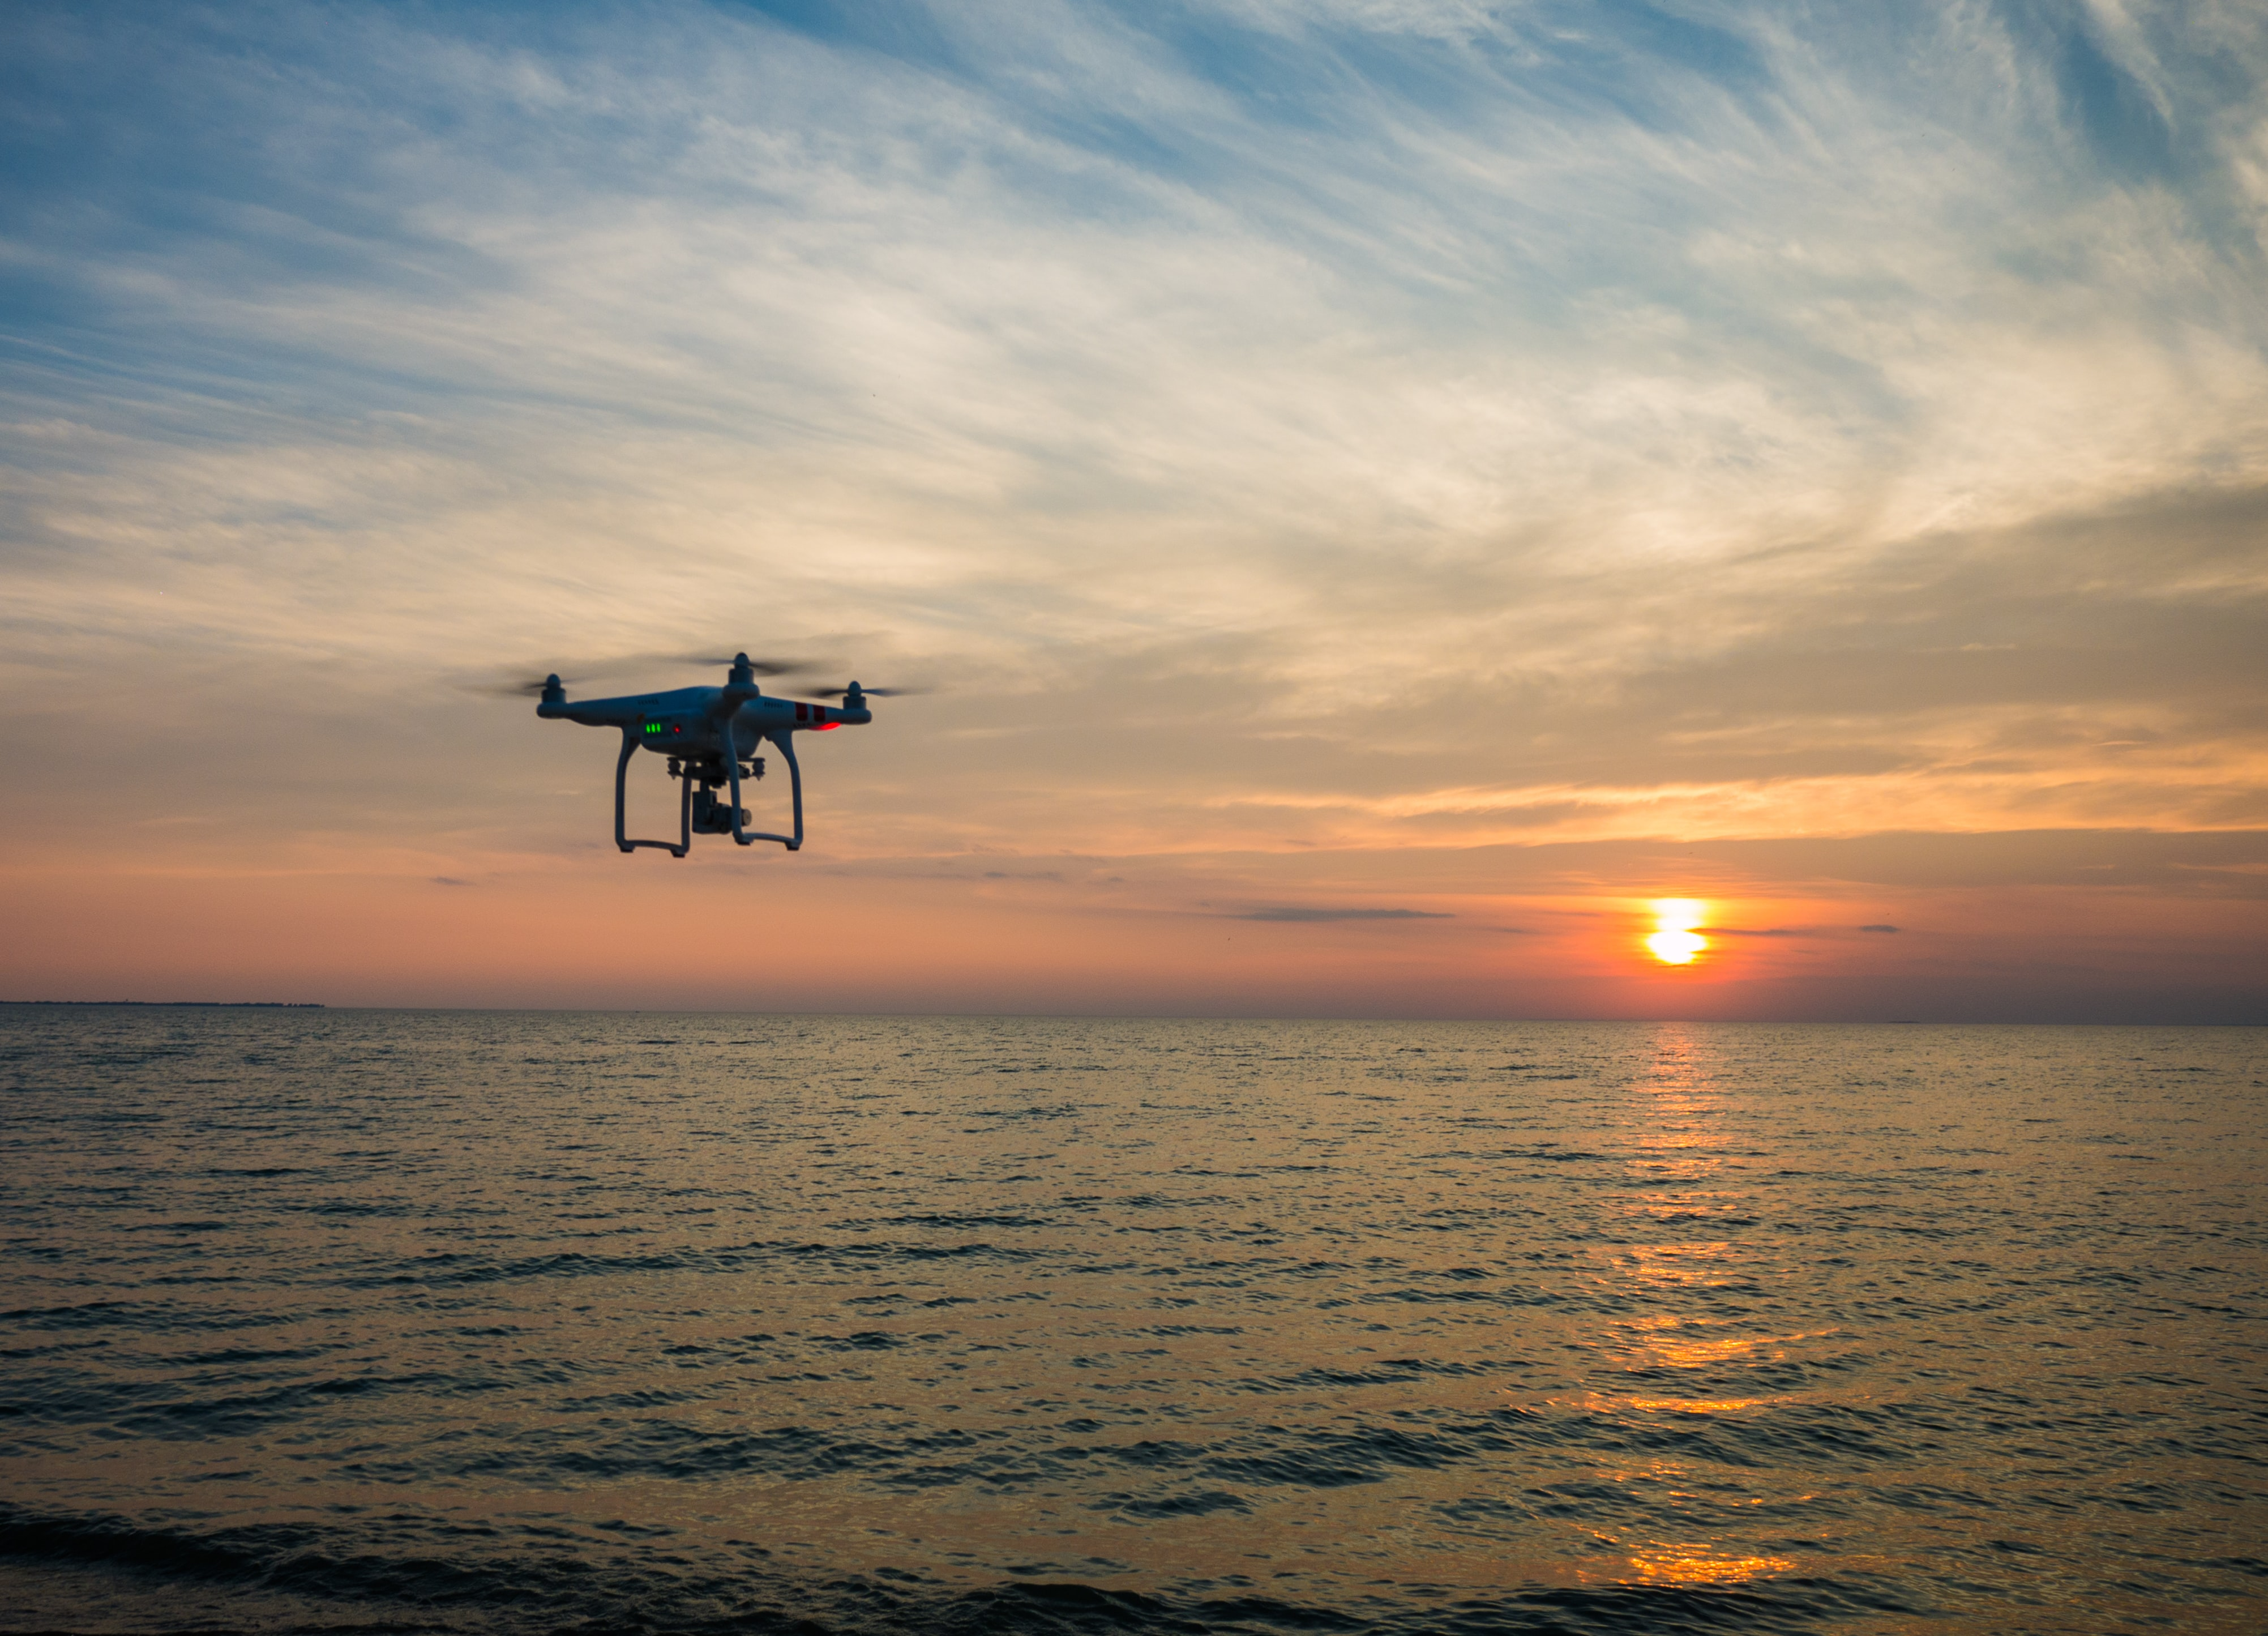 A drone flying over the sea capturing a cloudy orange sunset